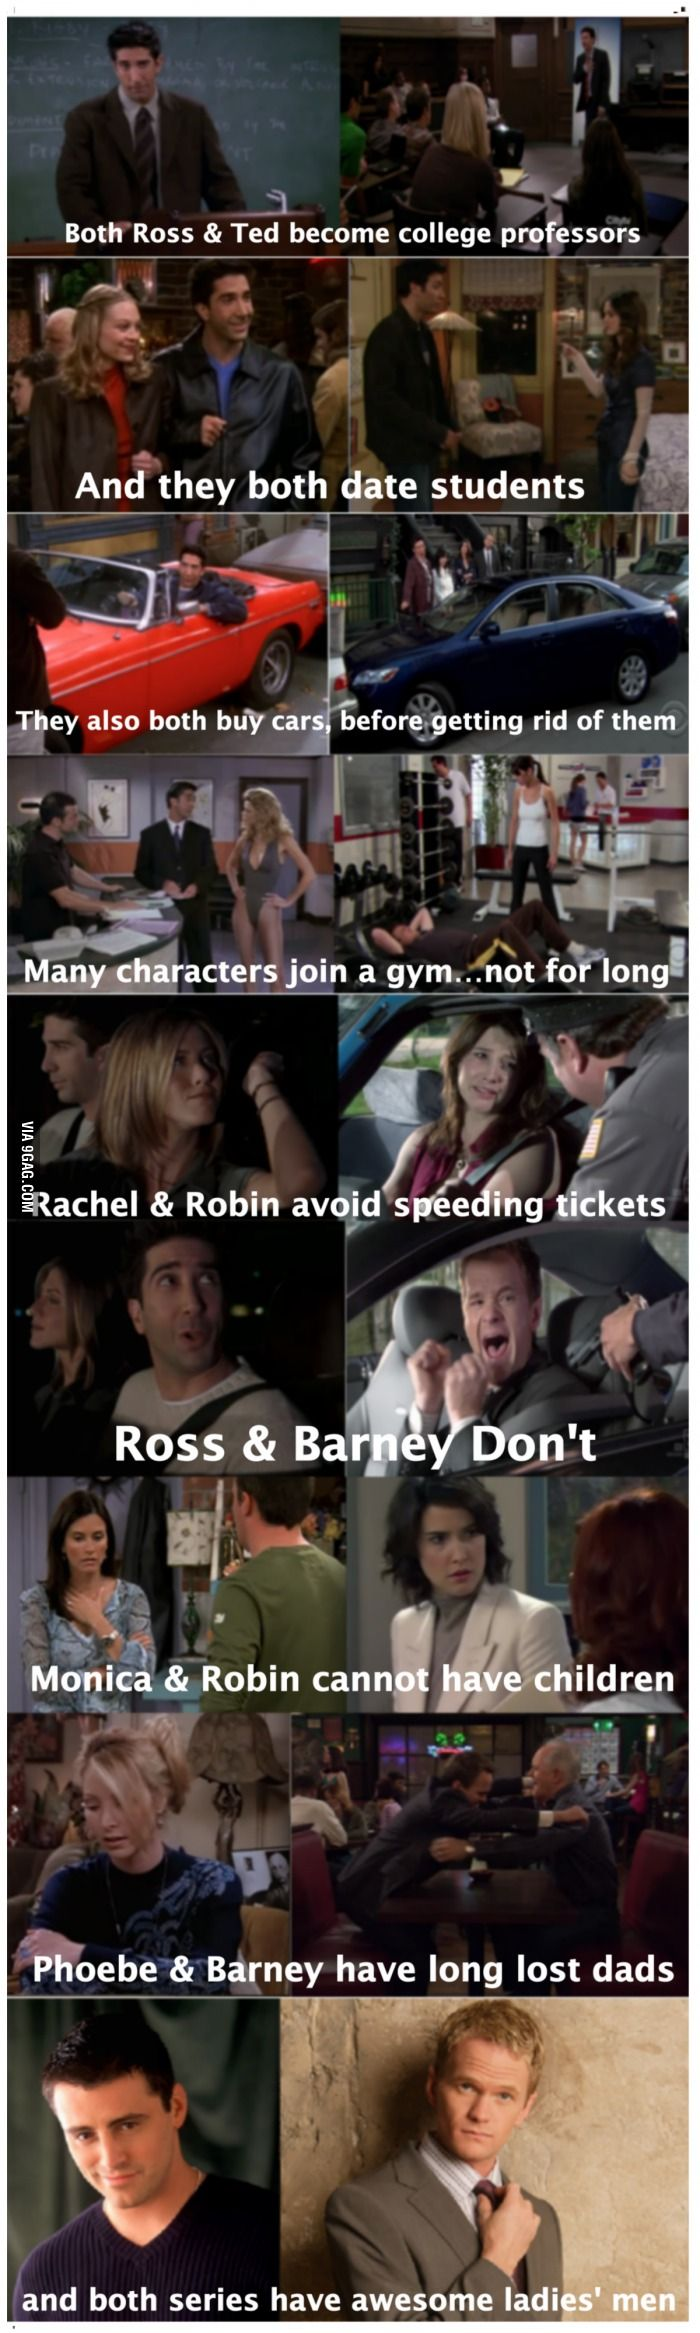 Similarities between Friends and How I Met Your Mother